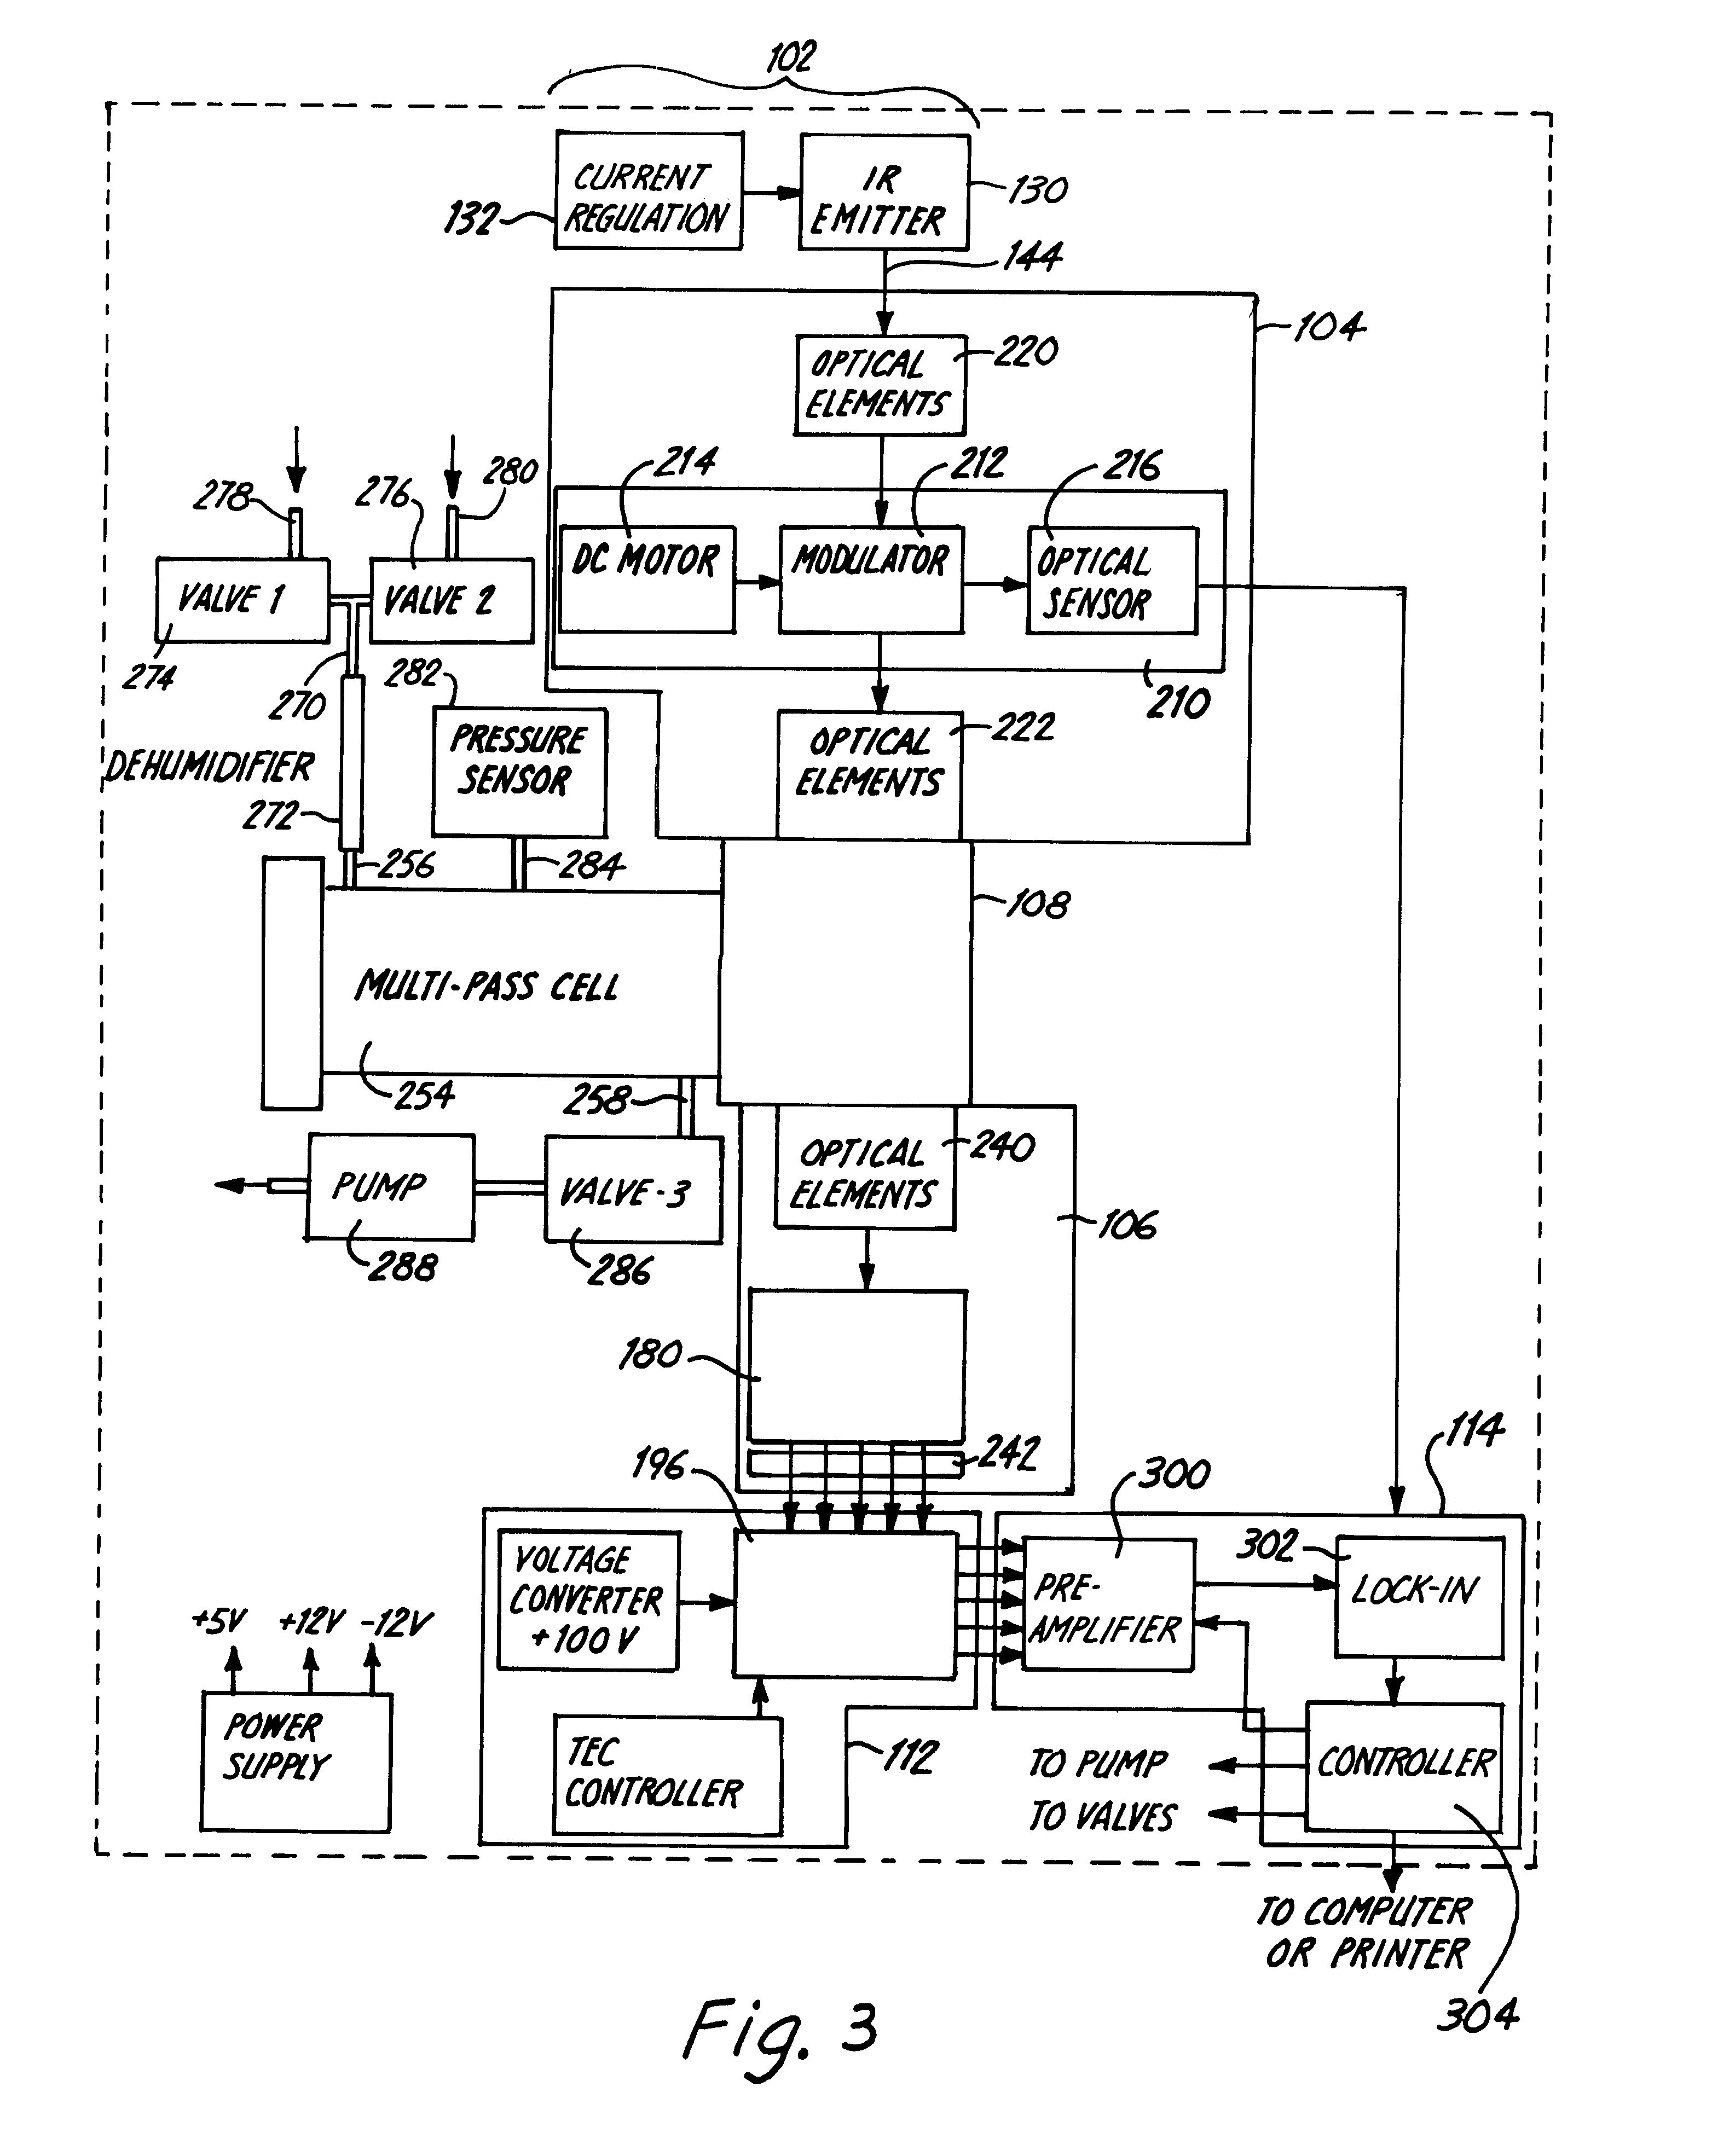 Element 276 Circuit Diagram Electrical Wiring Diagrams Fm Transmitter Simple By Va3avr Patent Us6486474 Infrared Spectrometer For The Measurement Of